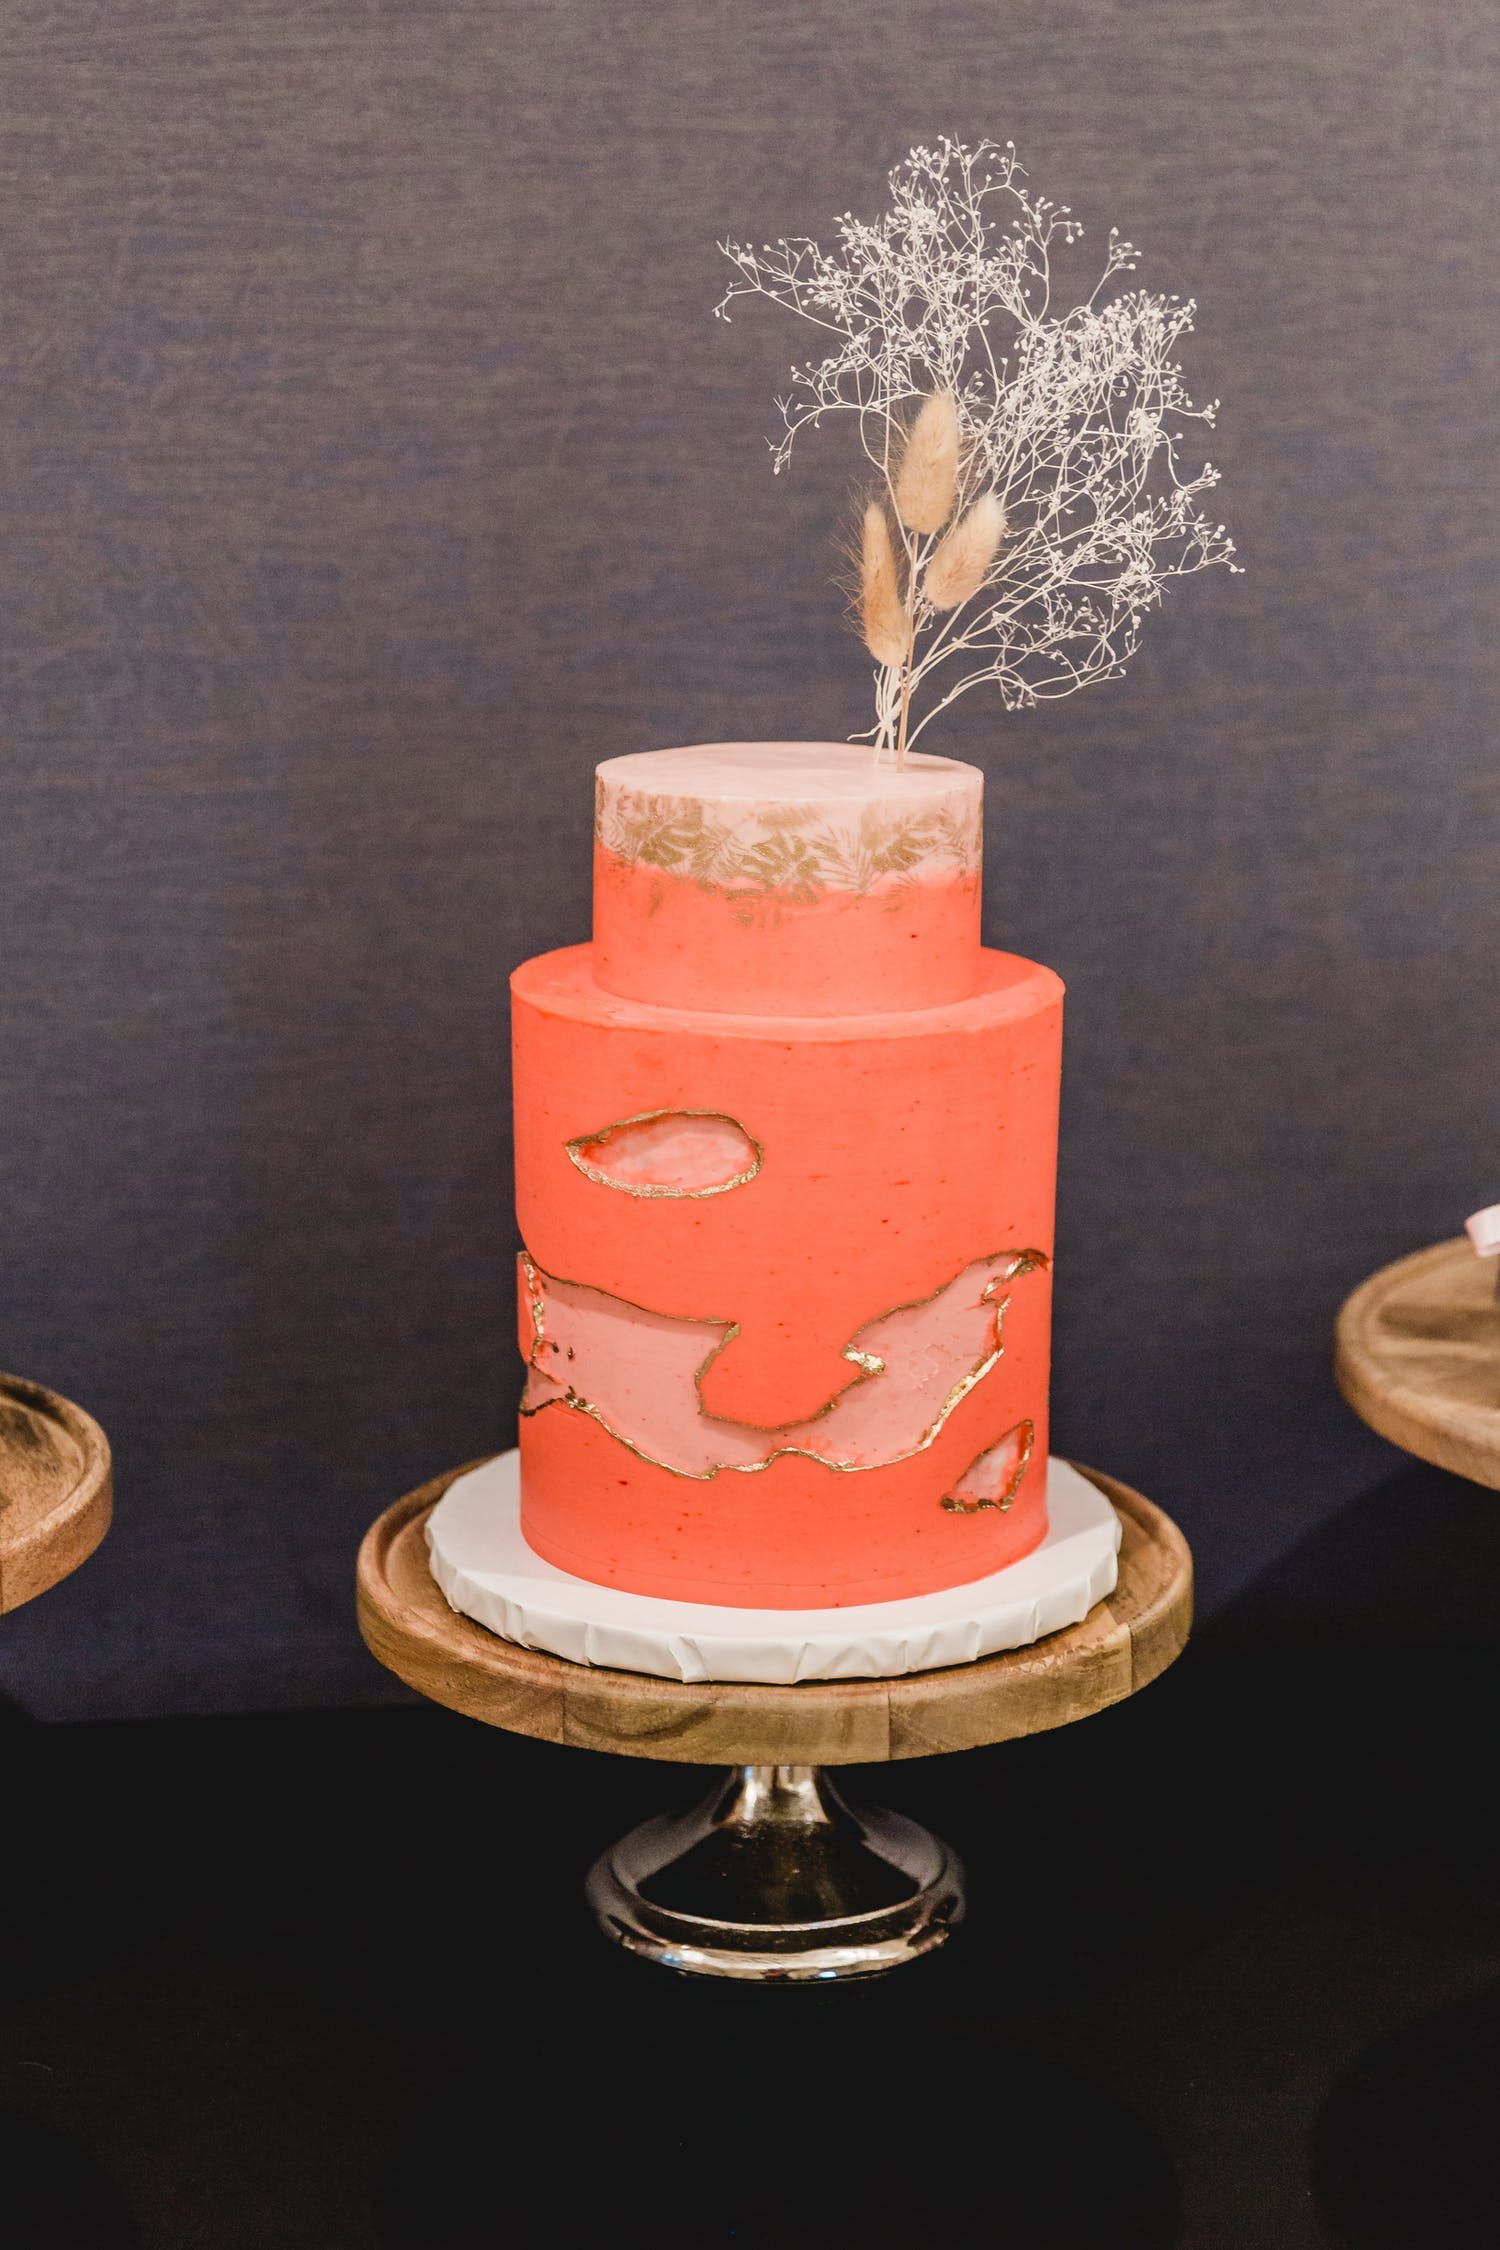 Two tier salmon-colored wedding cake with unique design | PartySlate